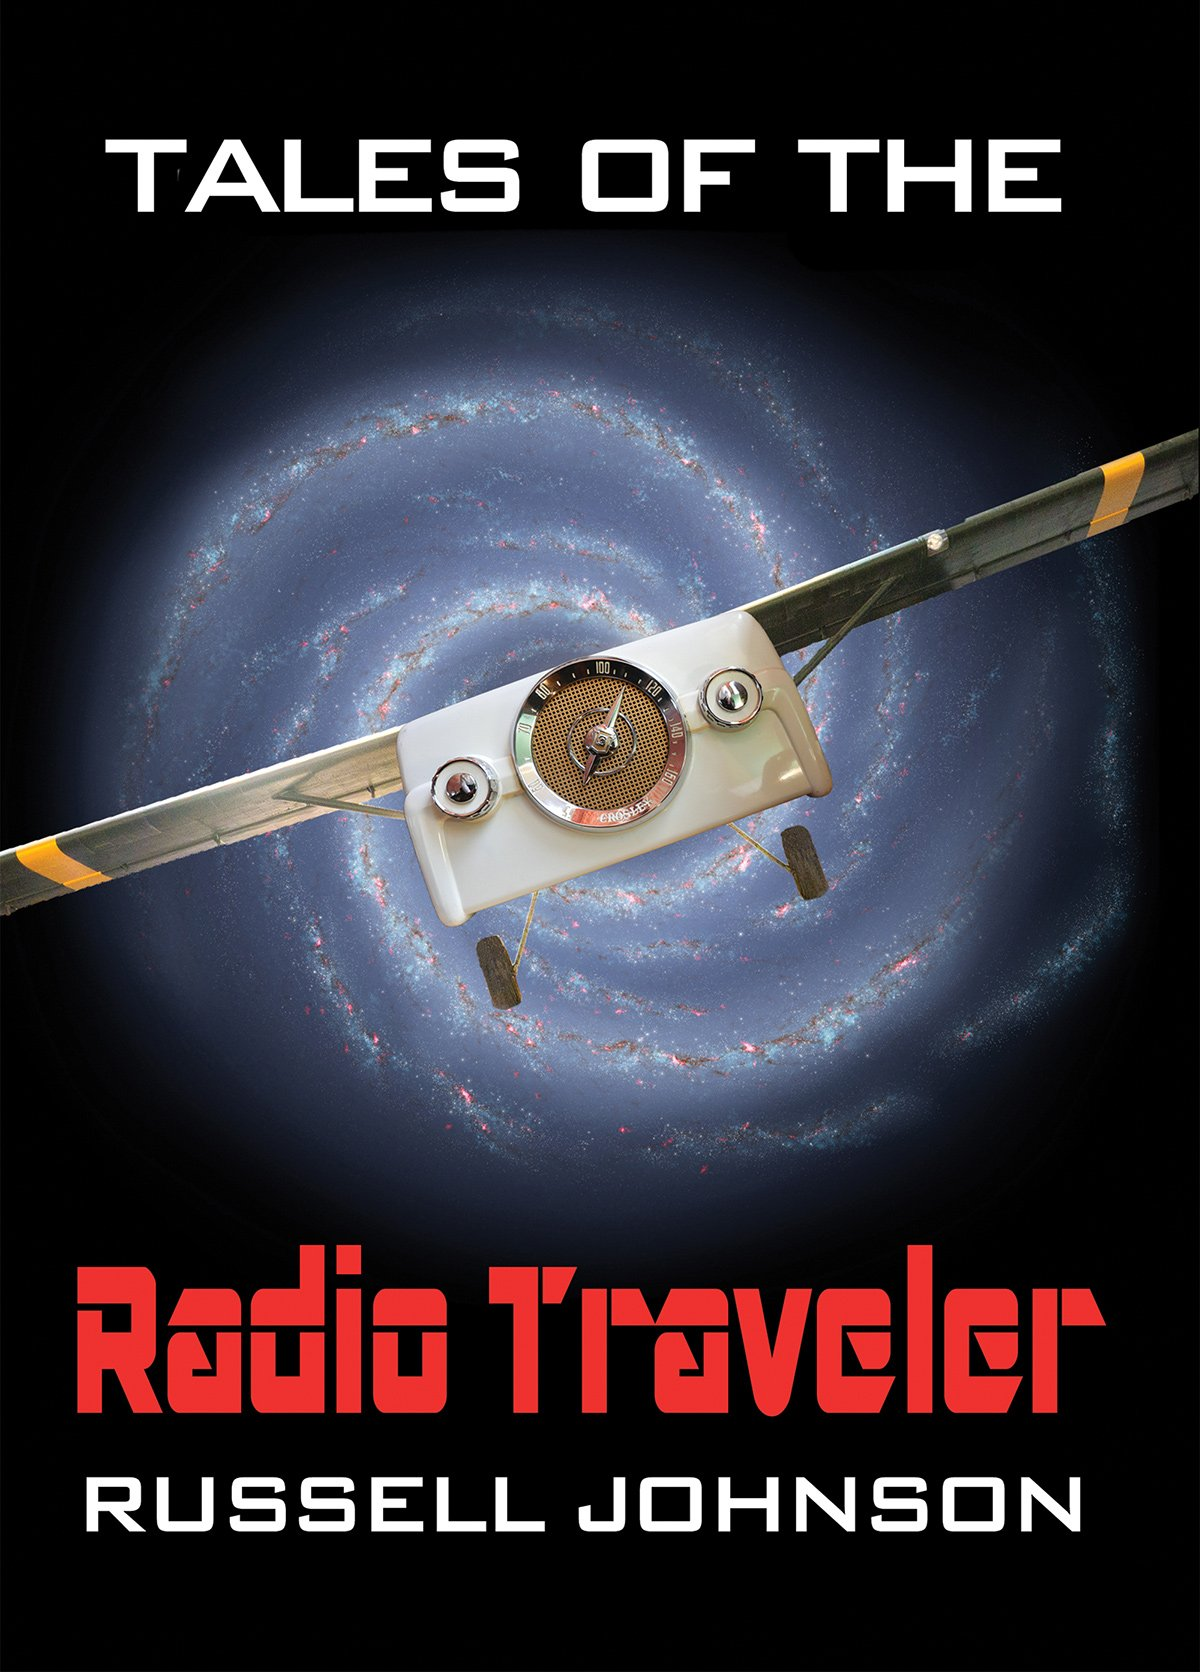 Tales of the Radio Traveler book cover